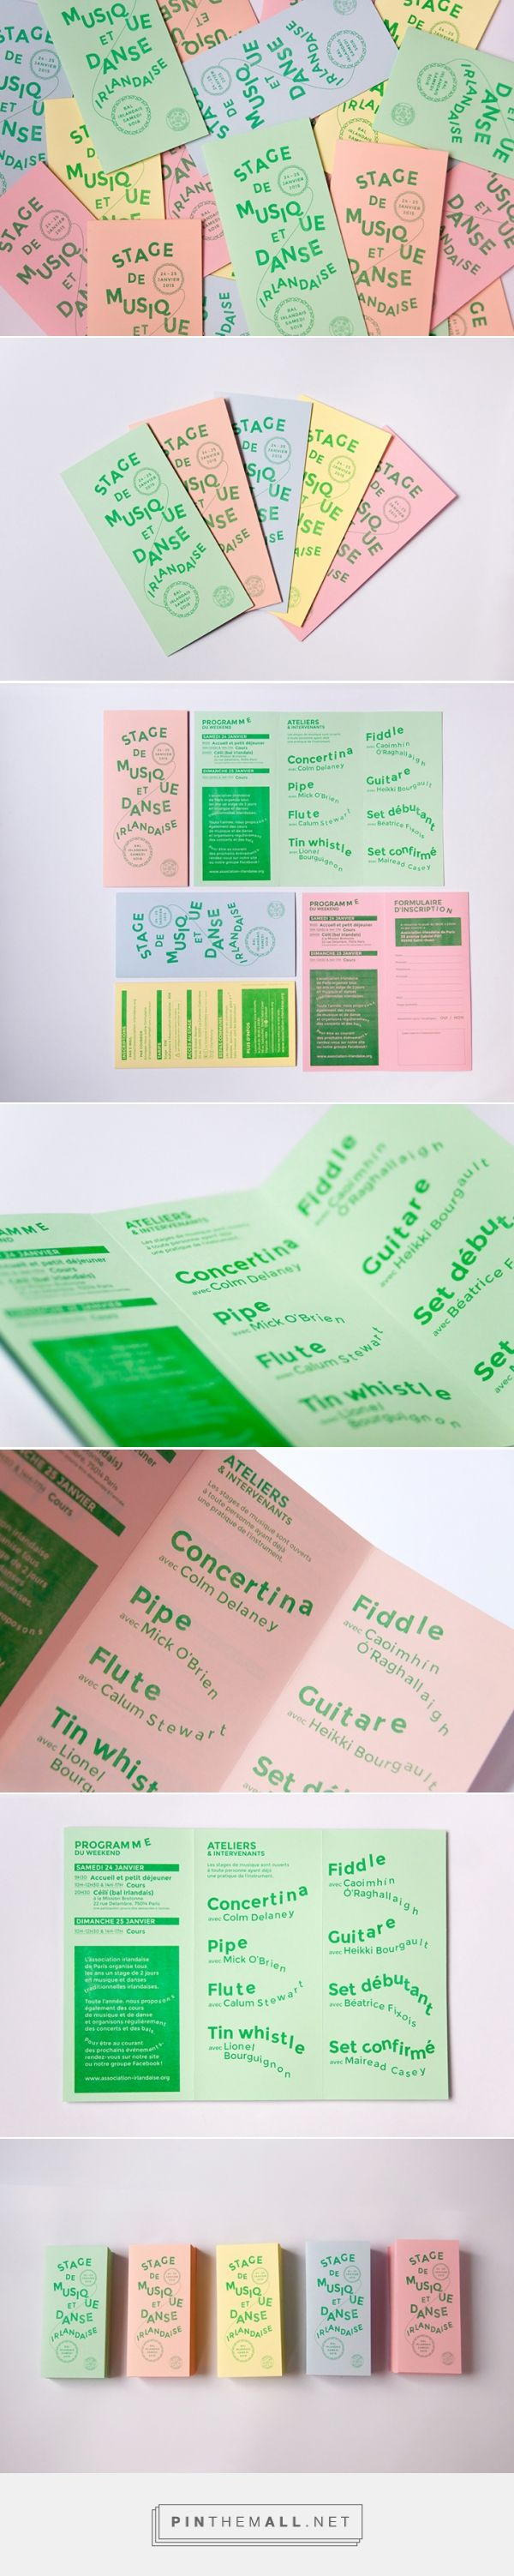 It's Nice That | La Mouche et La Cloche's charming and musical identity for Association Irlandaise... - a grouped images picture - Pin Them All